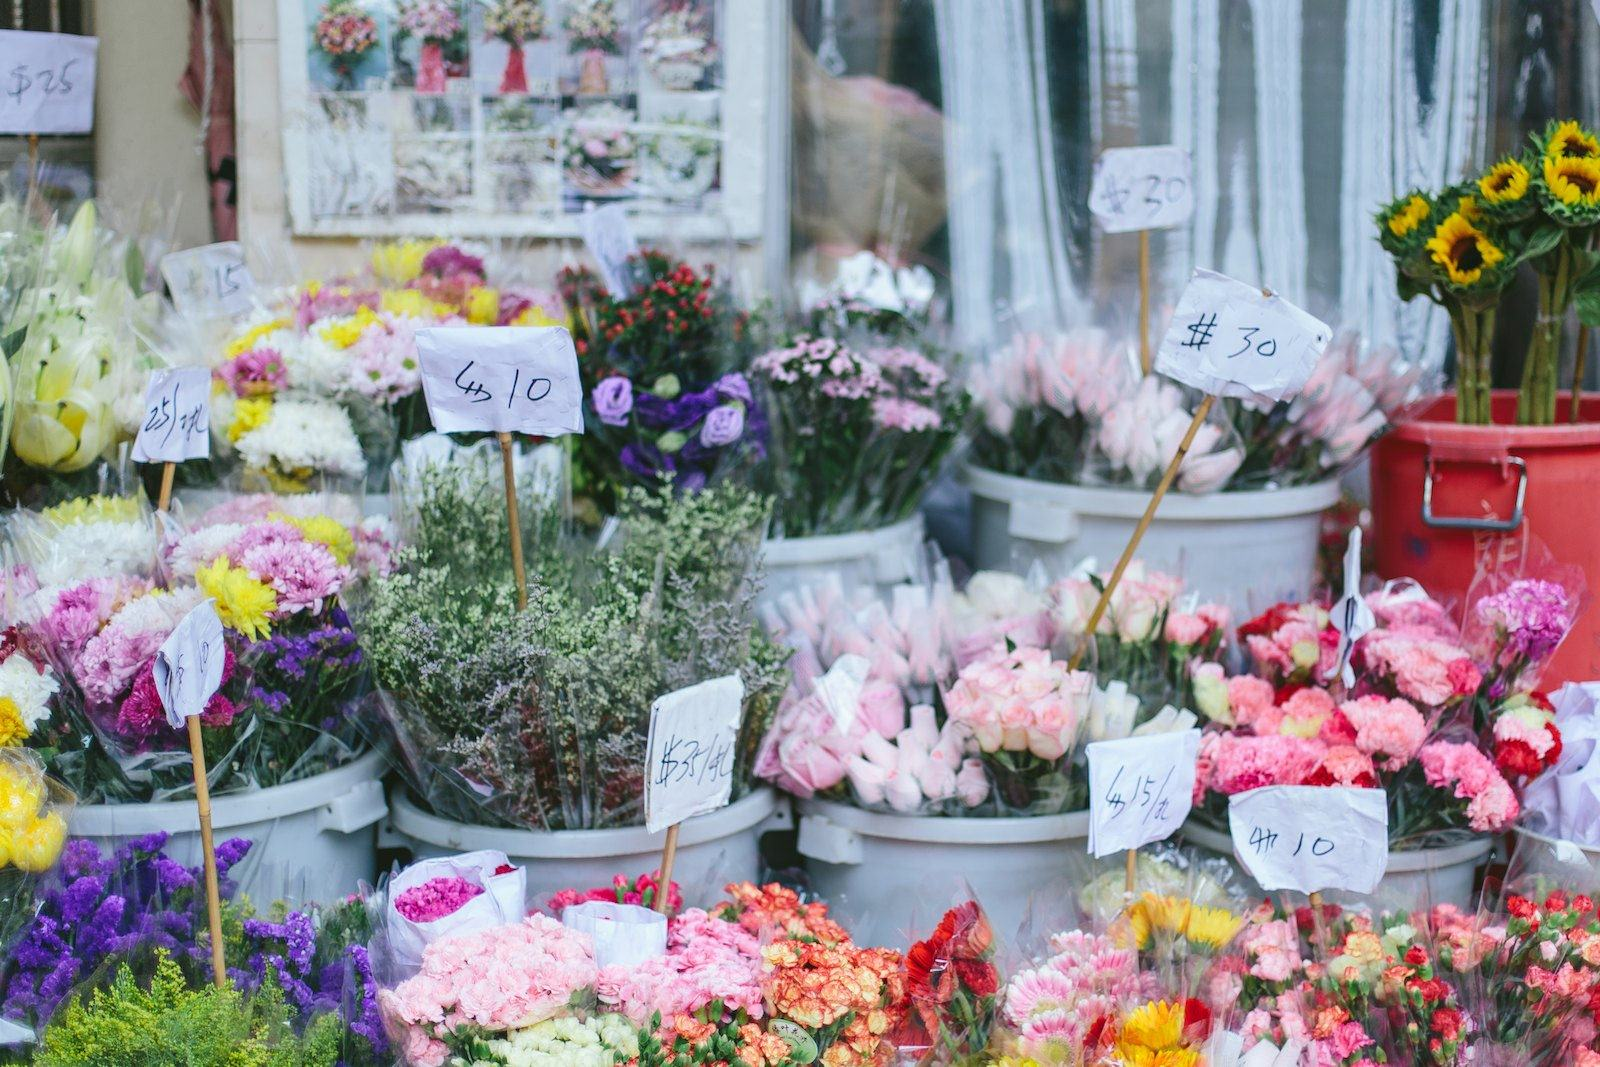 Flower stalls at Flower Market Road